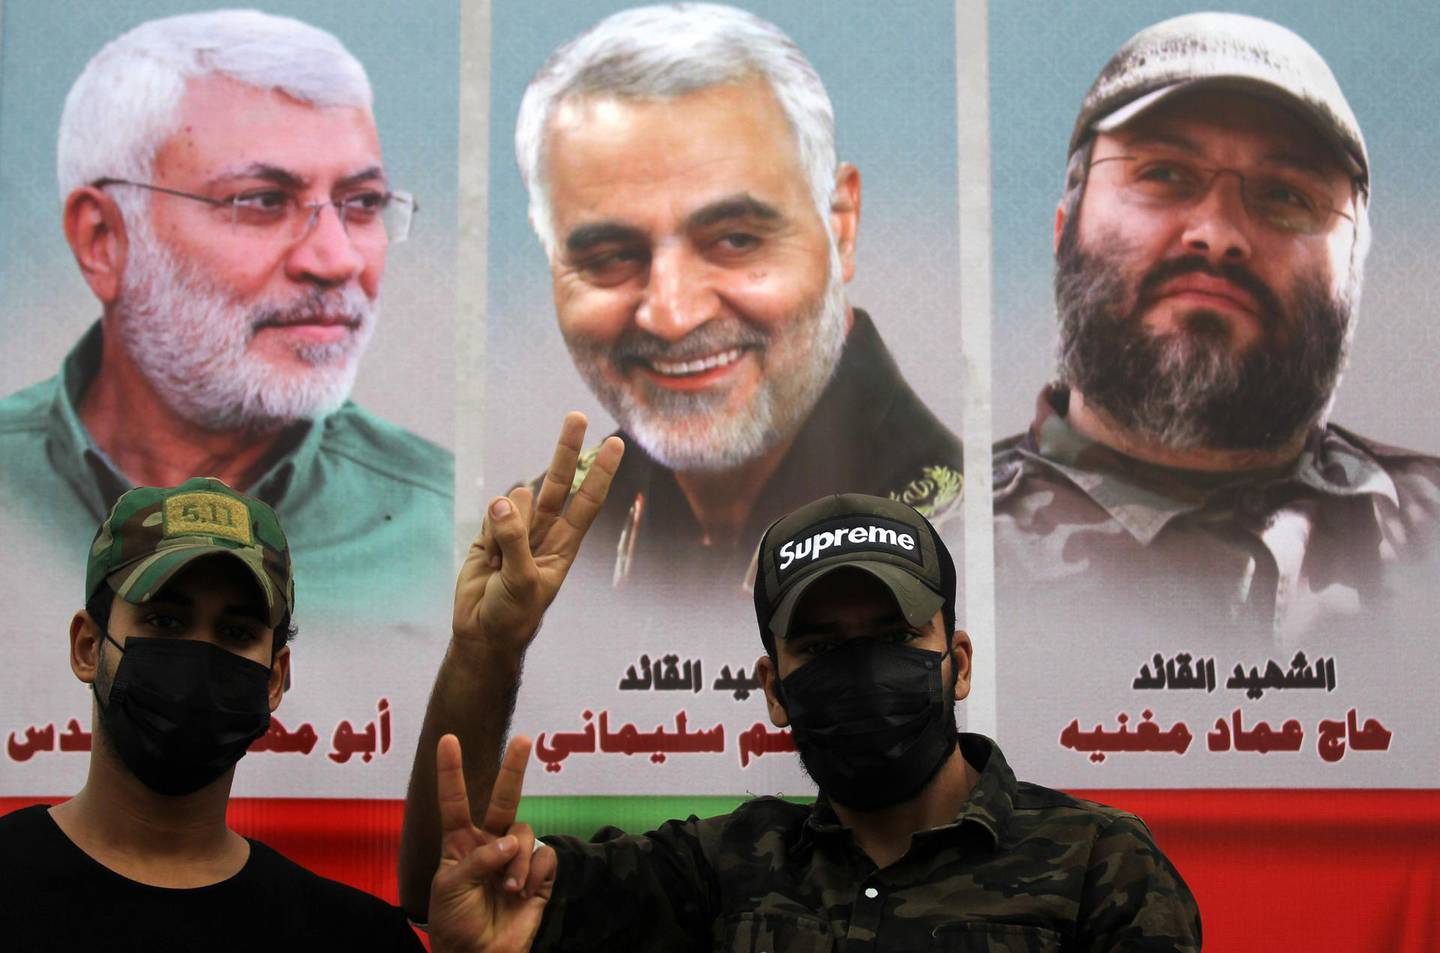 Supporter of the Iran-backed Hashed al-Shaabi (Popular Mobilisation) paramilitary forces pose before a banner showing a montage of (L to R) slain Iraqi paramilitary commander Abu Mahdi al-Muhandis, Iranian commander Qassem Soleimani, and Lebanese Hezbollah commander Imad Mughniyeh during a demonstration outside the entrance to the Iraqi capital Baghdad's highly-fortified Green Zone on November 7, 2020, demanding the departure of remaining US forces from Iraq. Several hundred protesters gathered in the Iraqi capital on Saturday afternoon to demand US troops leave the country in accordance with a parliament vote earlier this year. / AFP / AHMAD AL-RUBAYE